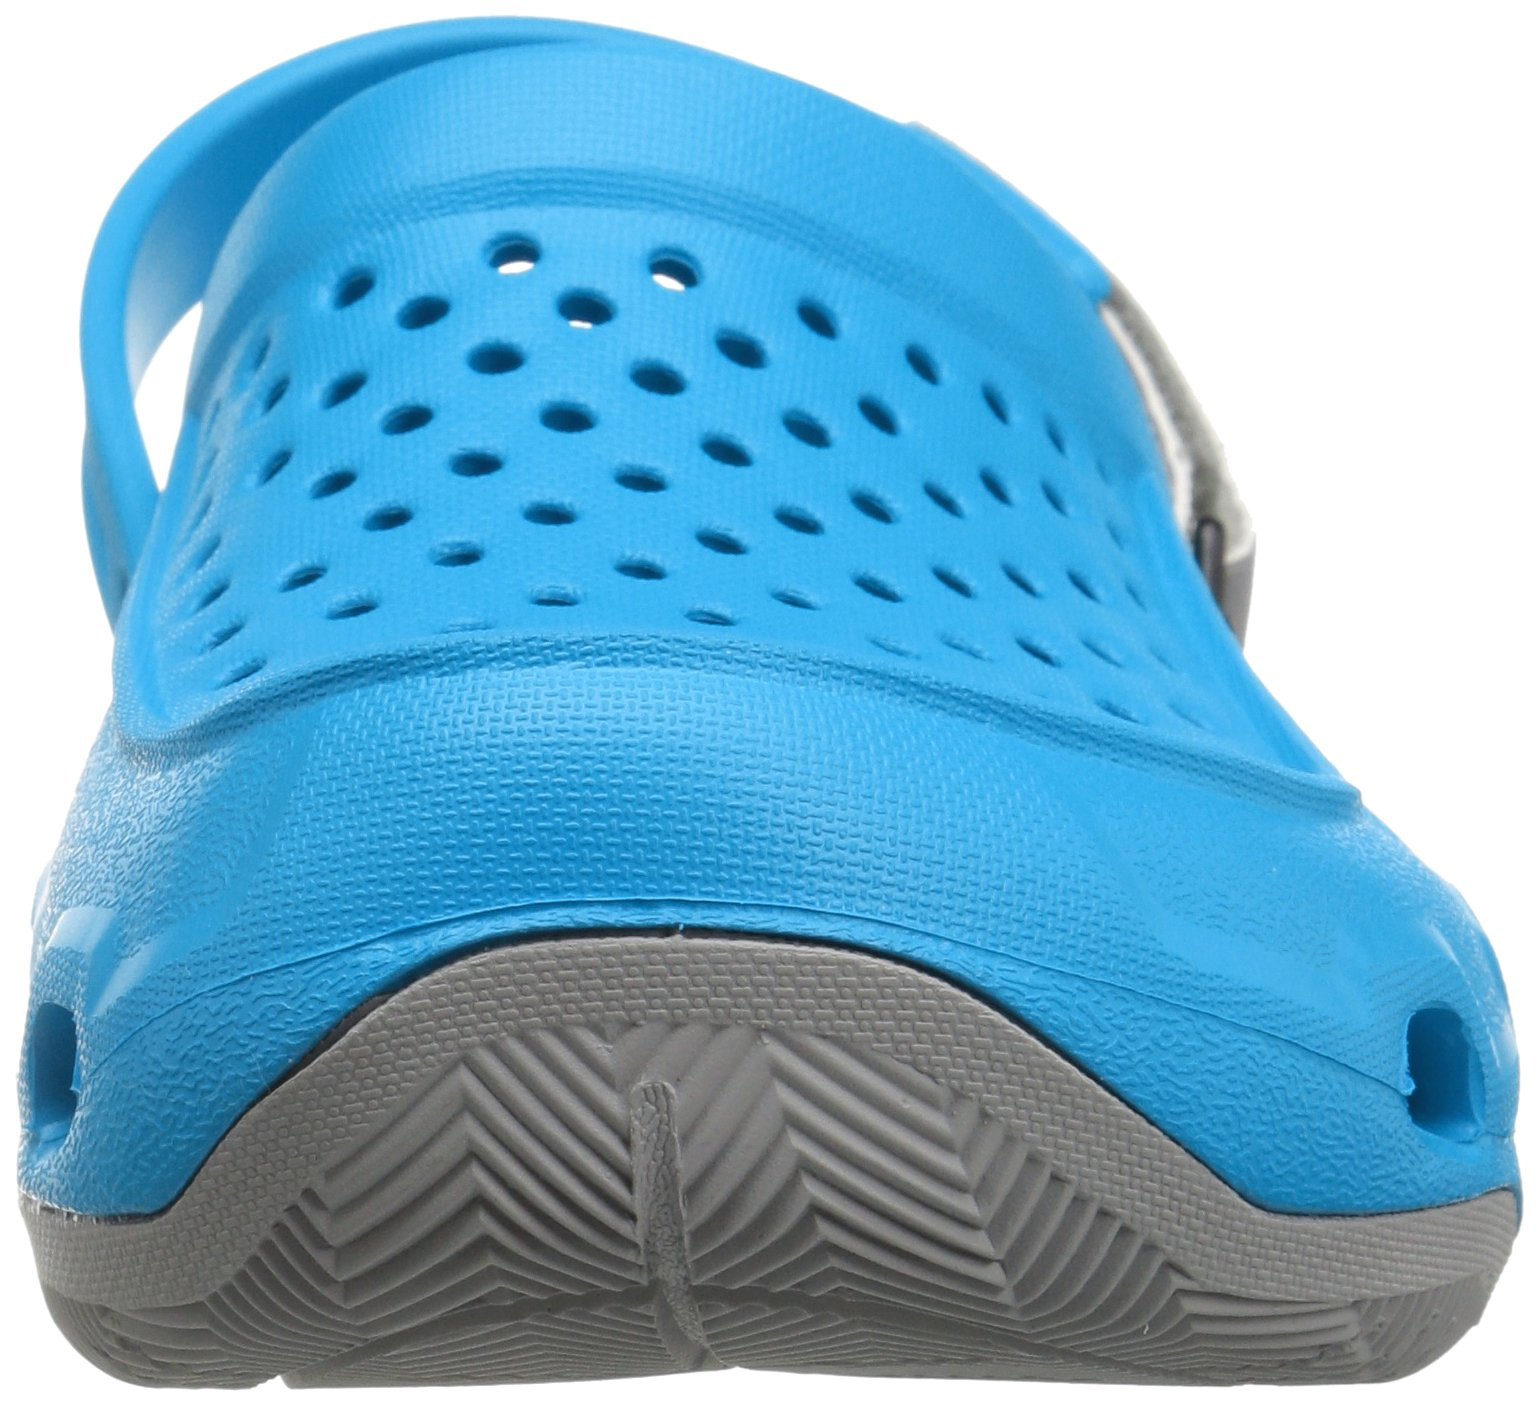 Crocs Swiftwater Deck Clog Men, Zuecos para Hombre